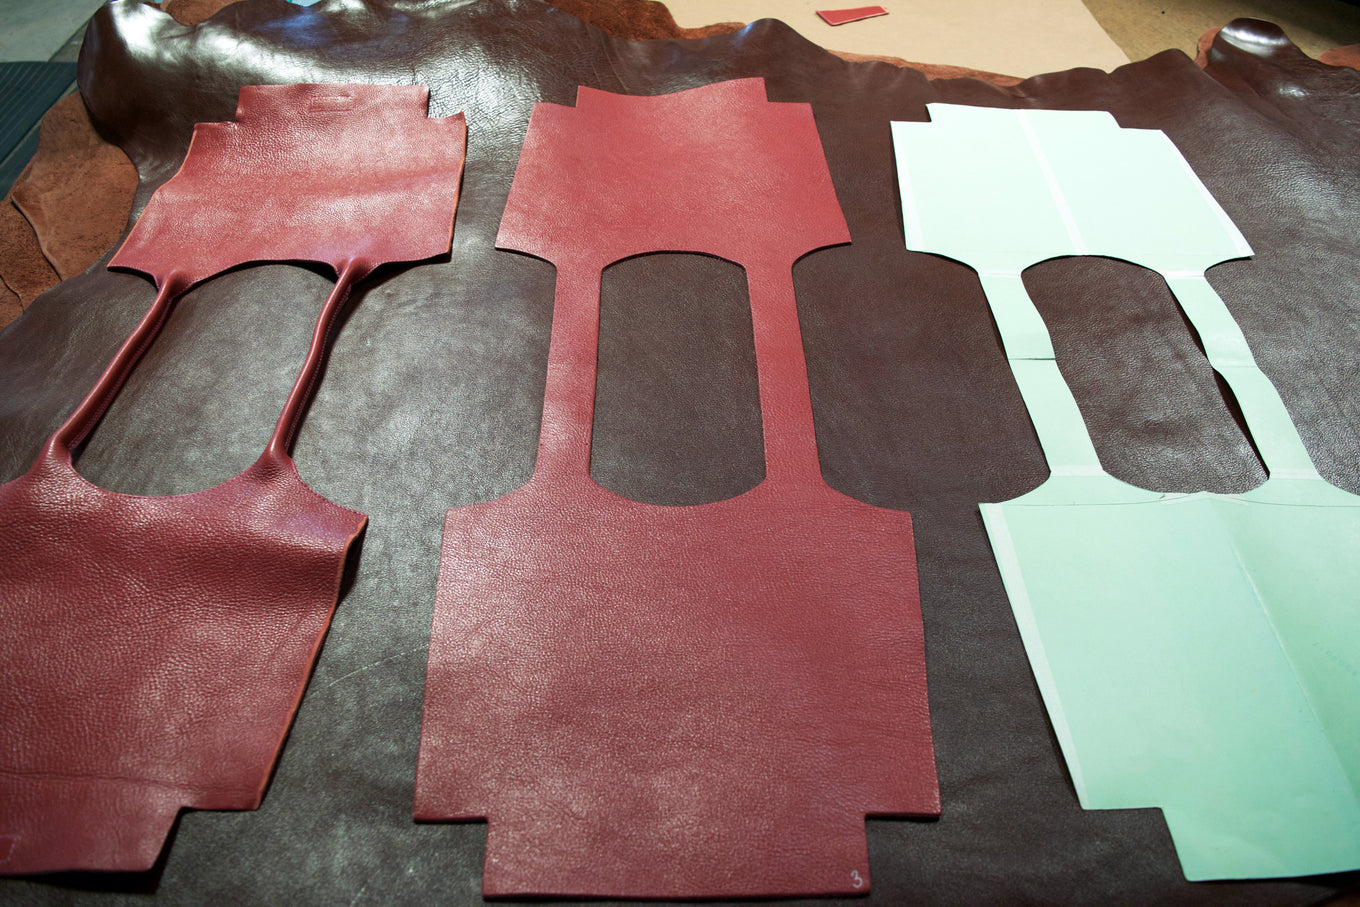 Cutting the Lotuff Leather One-Piece Handbag